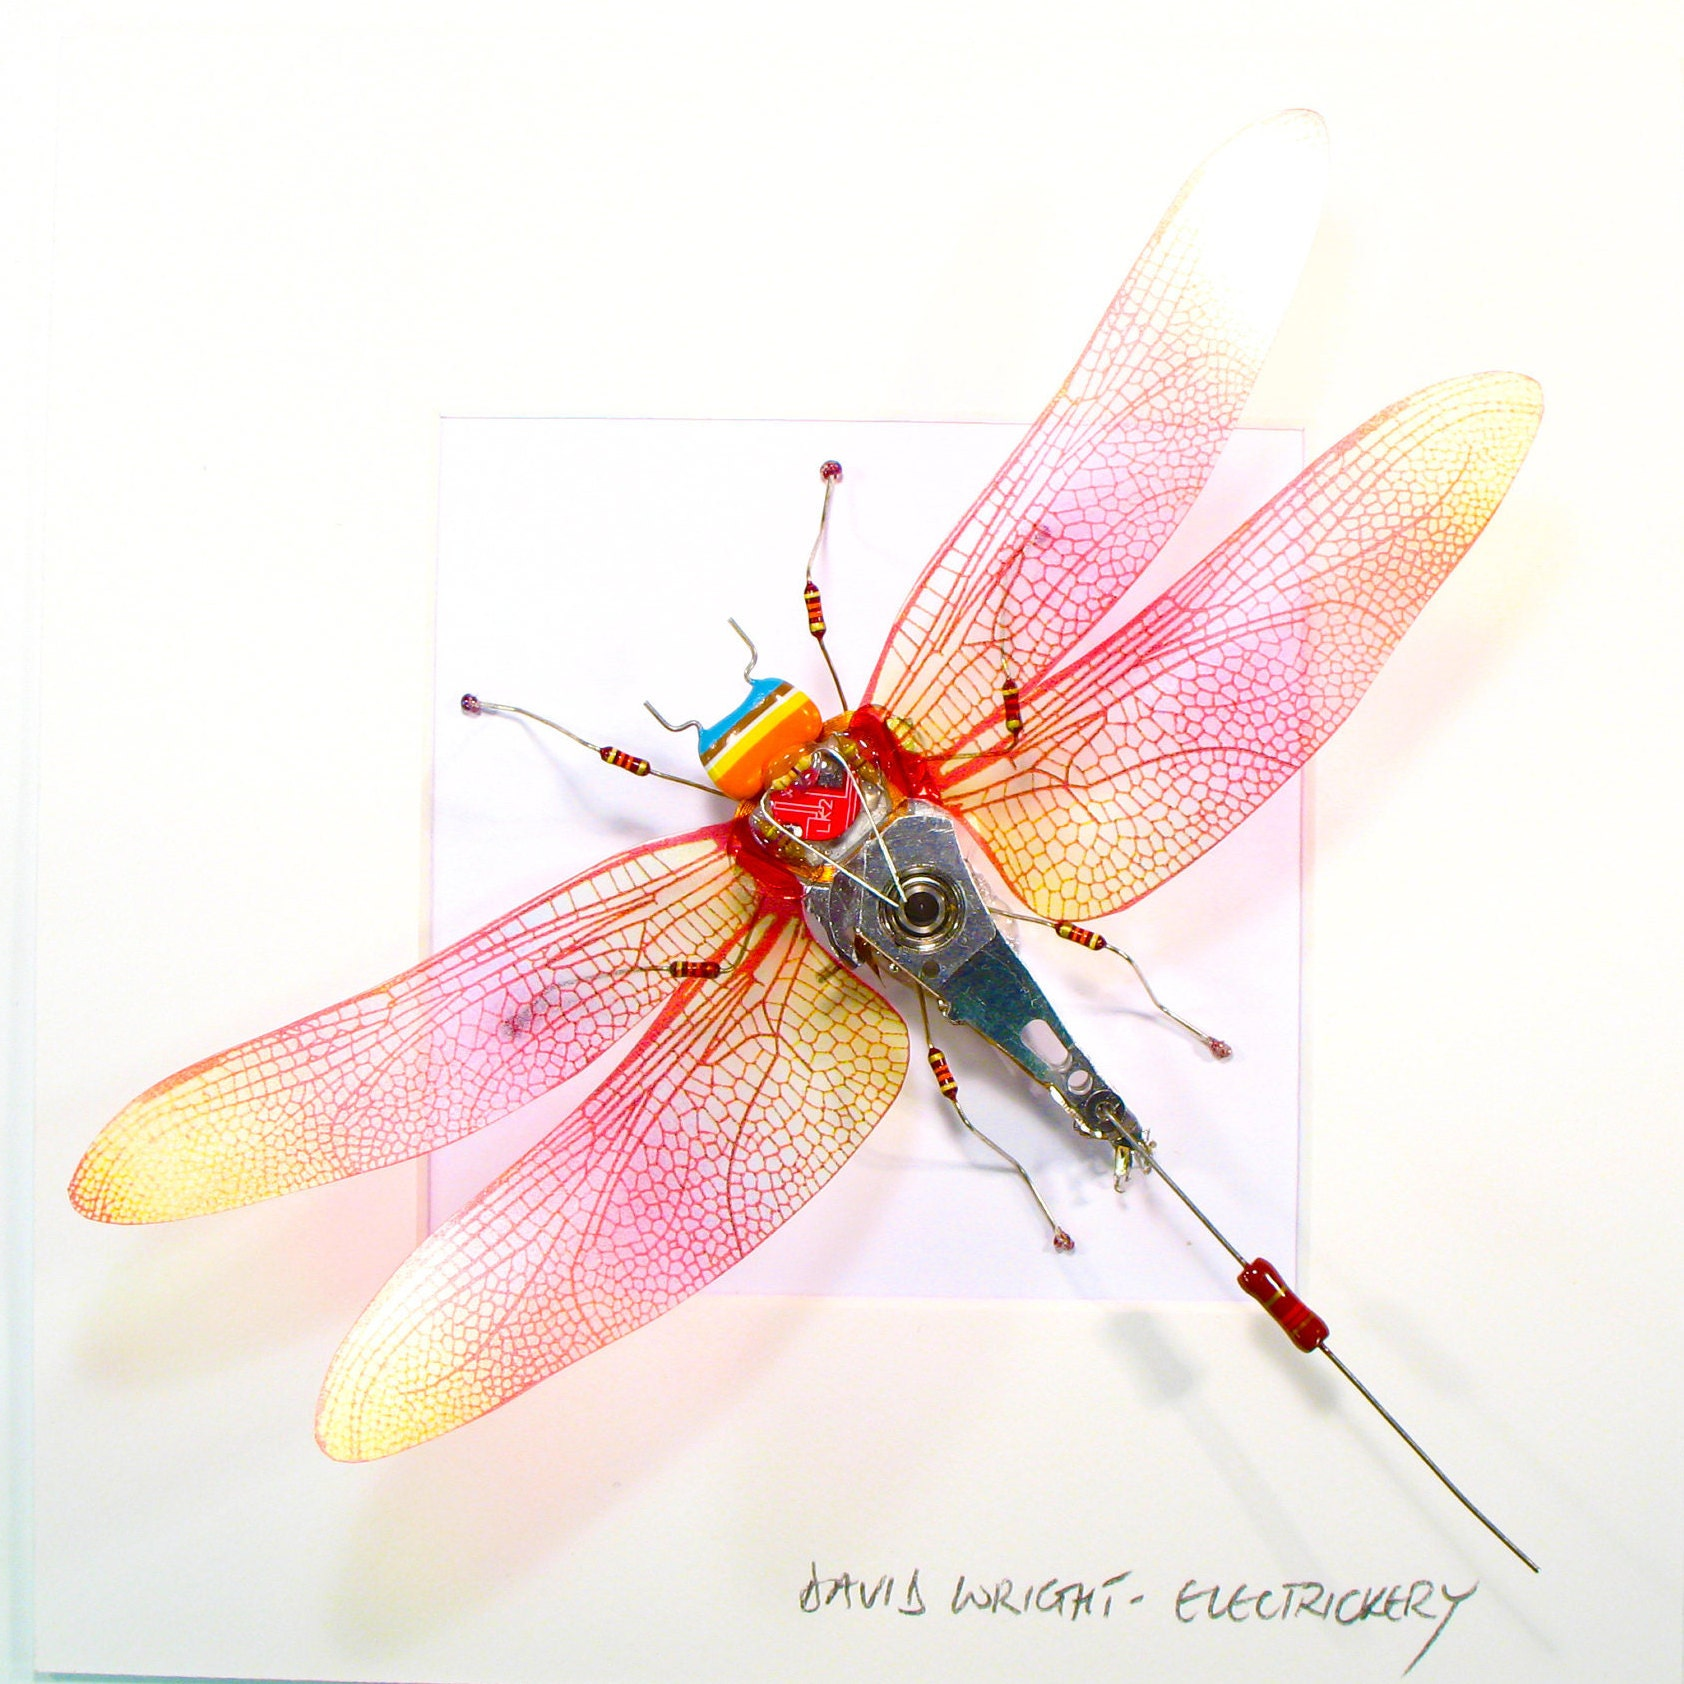 Wallpaper Iridescent dragonfly wings 1920x1200 HD Picture ... |Iridescent Dragonflies